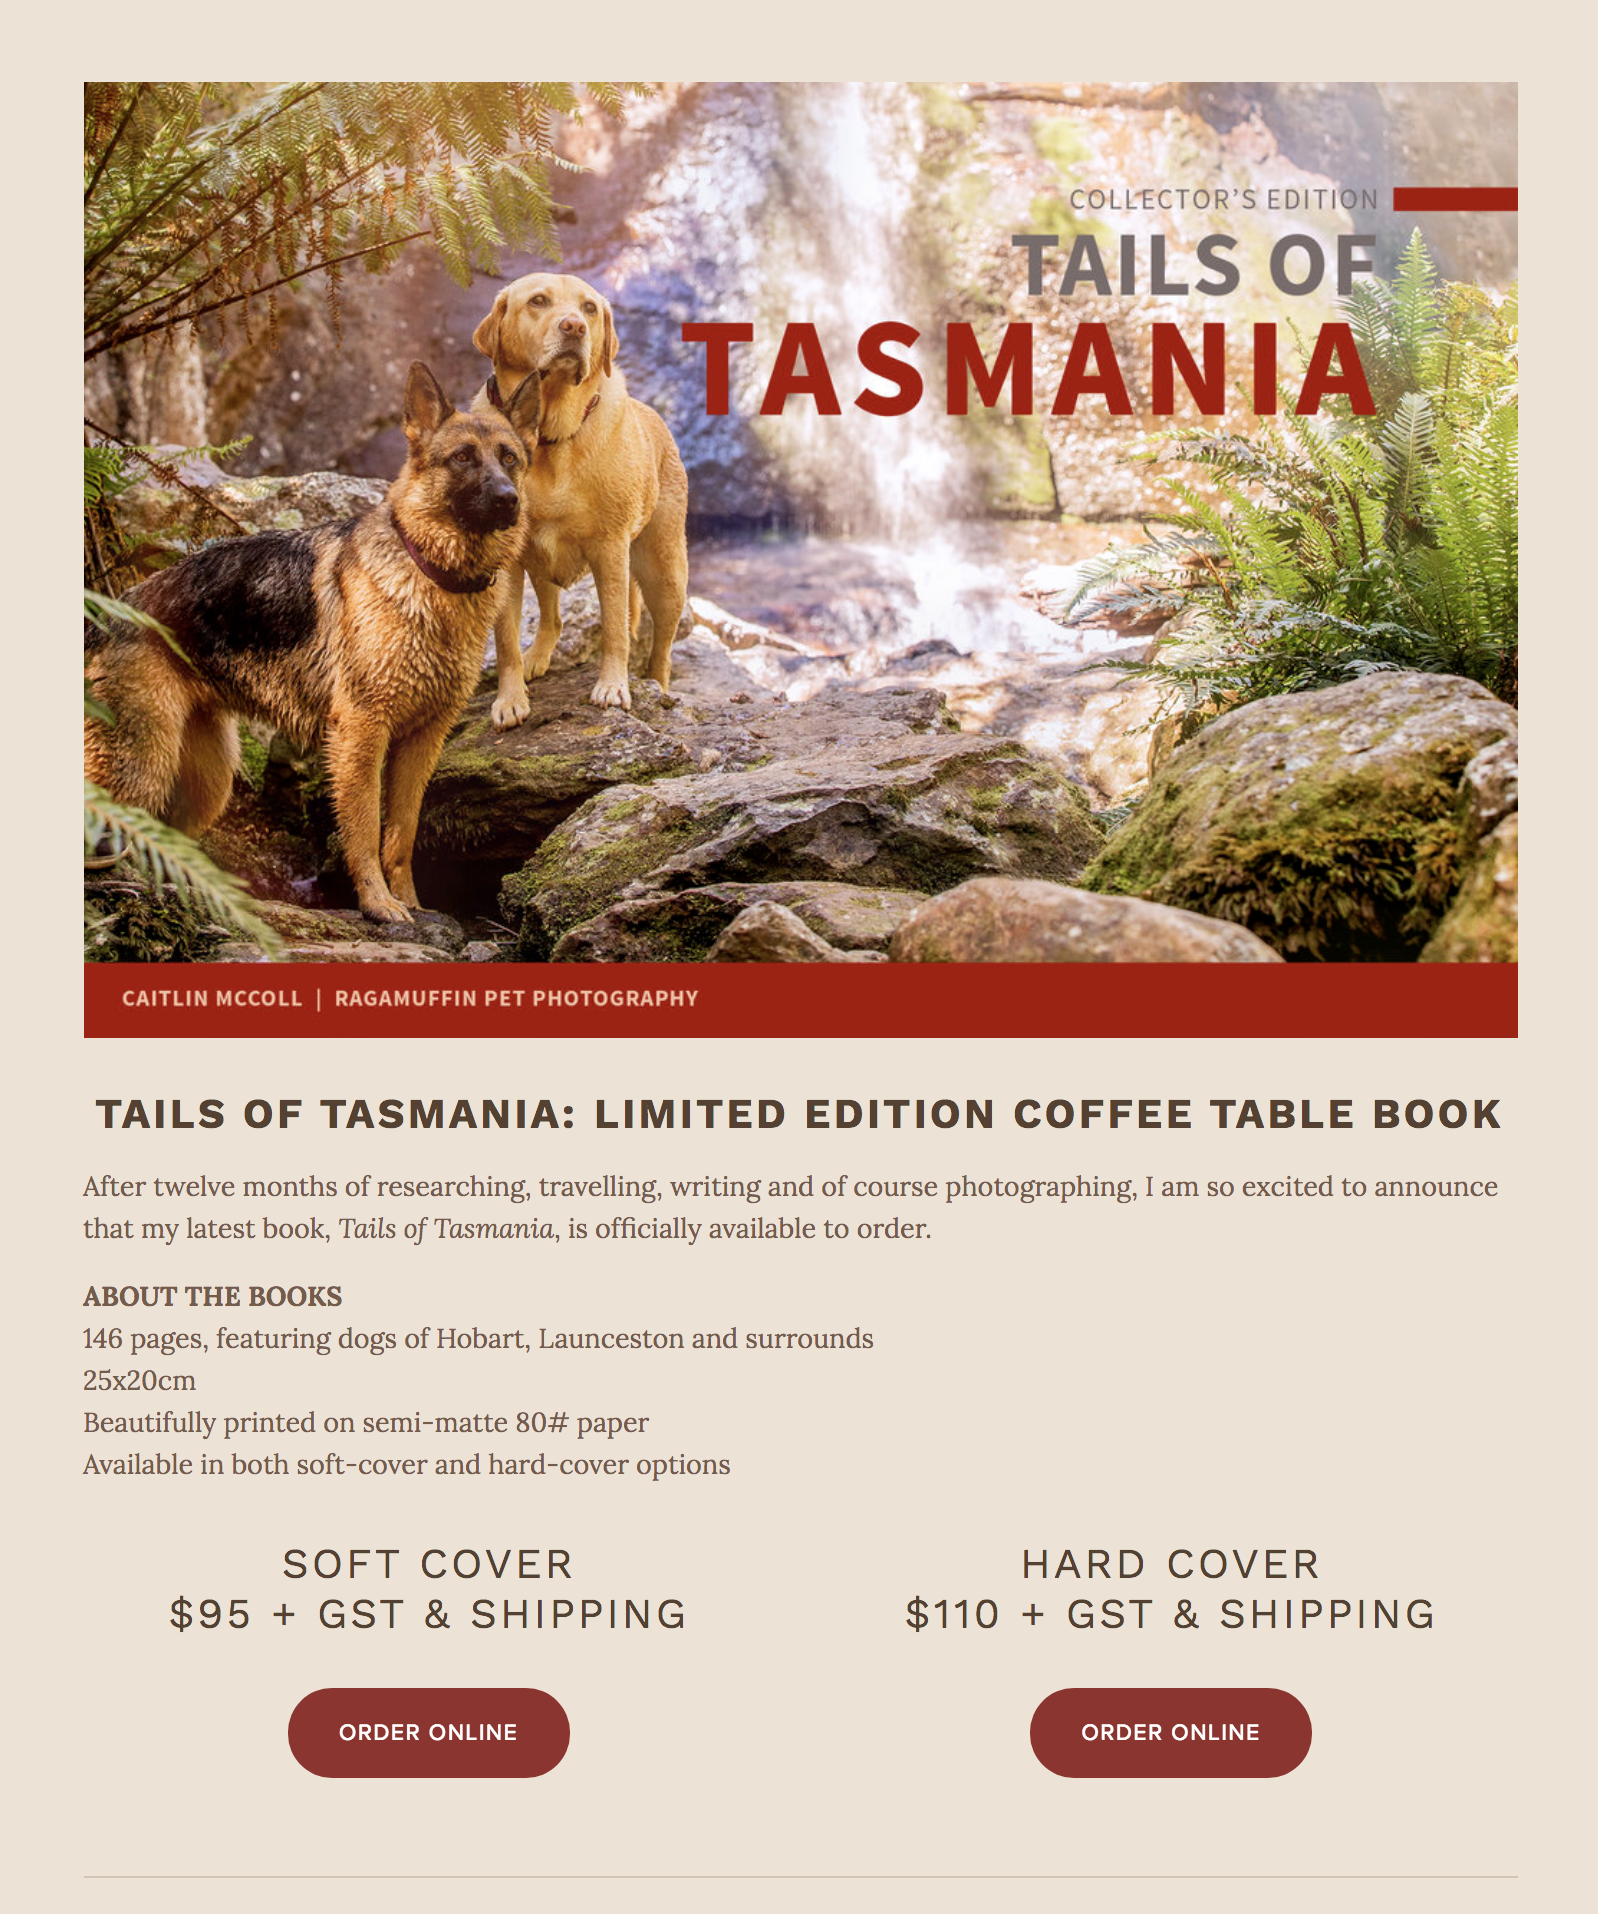 Tails of Tasmania is officially released - Caitlin's latest coffee table book is complete and available to order[Grab yours here:http://au.blurb.com/b/8742066-tails-of-tasmania-hardcover]